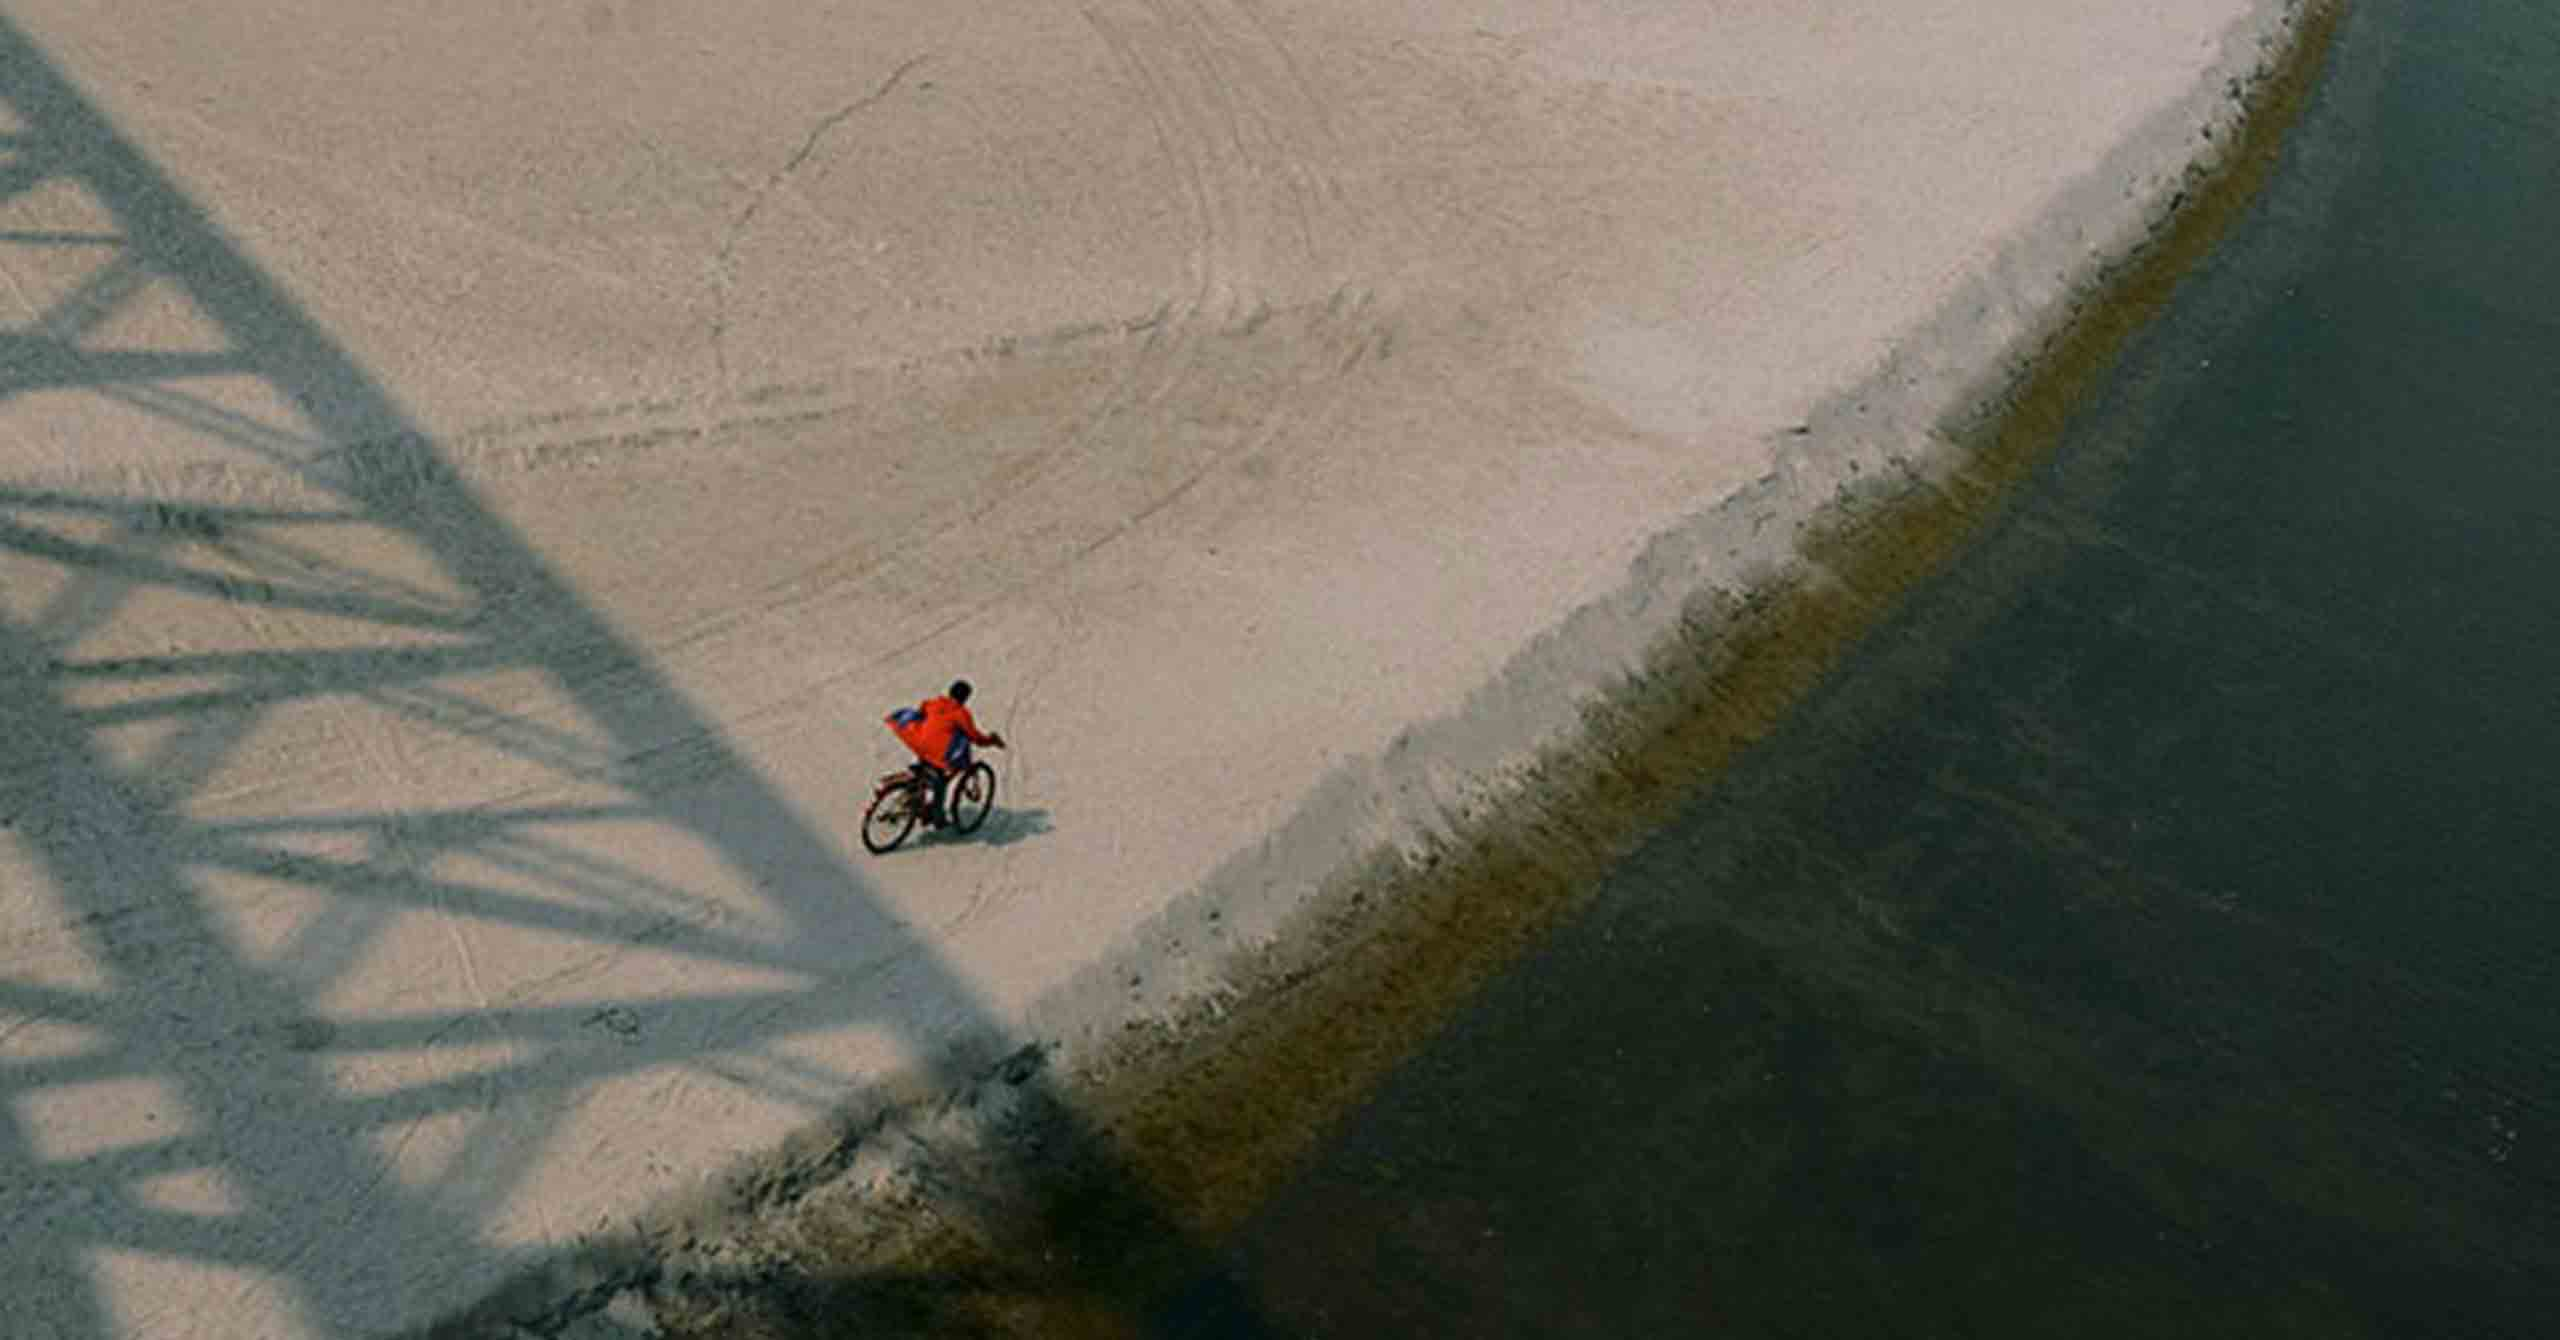 The story of Bangladesh and lonely life through Sham's Photography